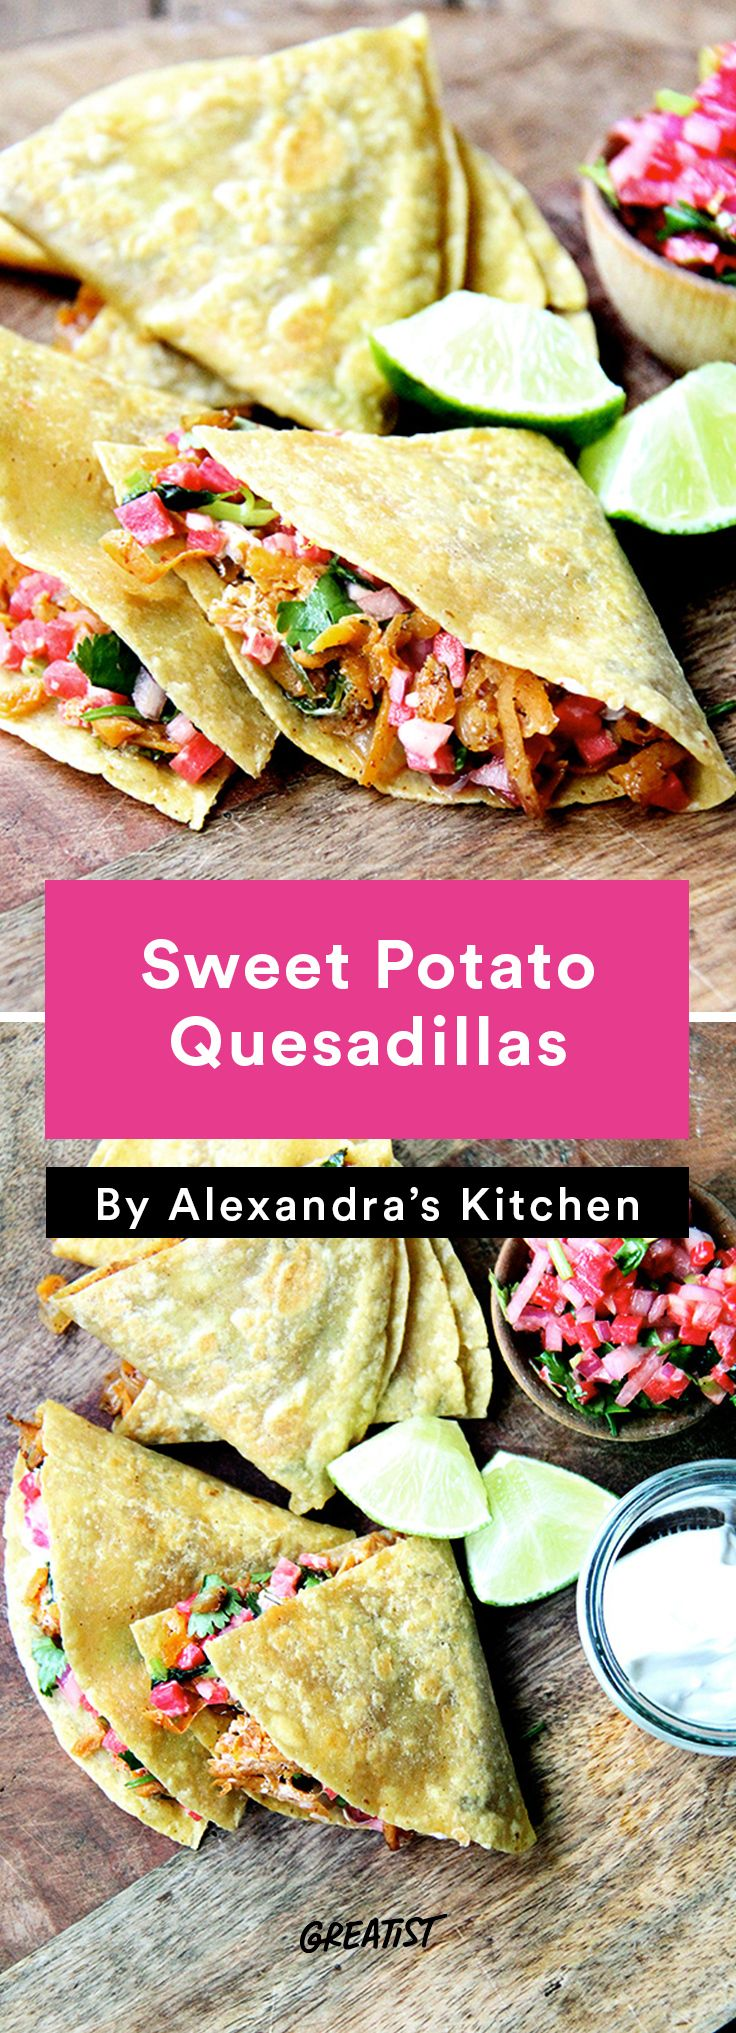 1. Sweet Potato Quesadillas #vegetarian #dinner #recipes http://greatist.com/eat/healthy-dinner-recipes-for-vegetarians